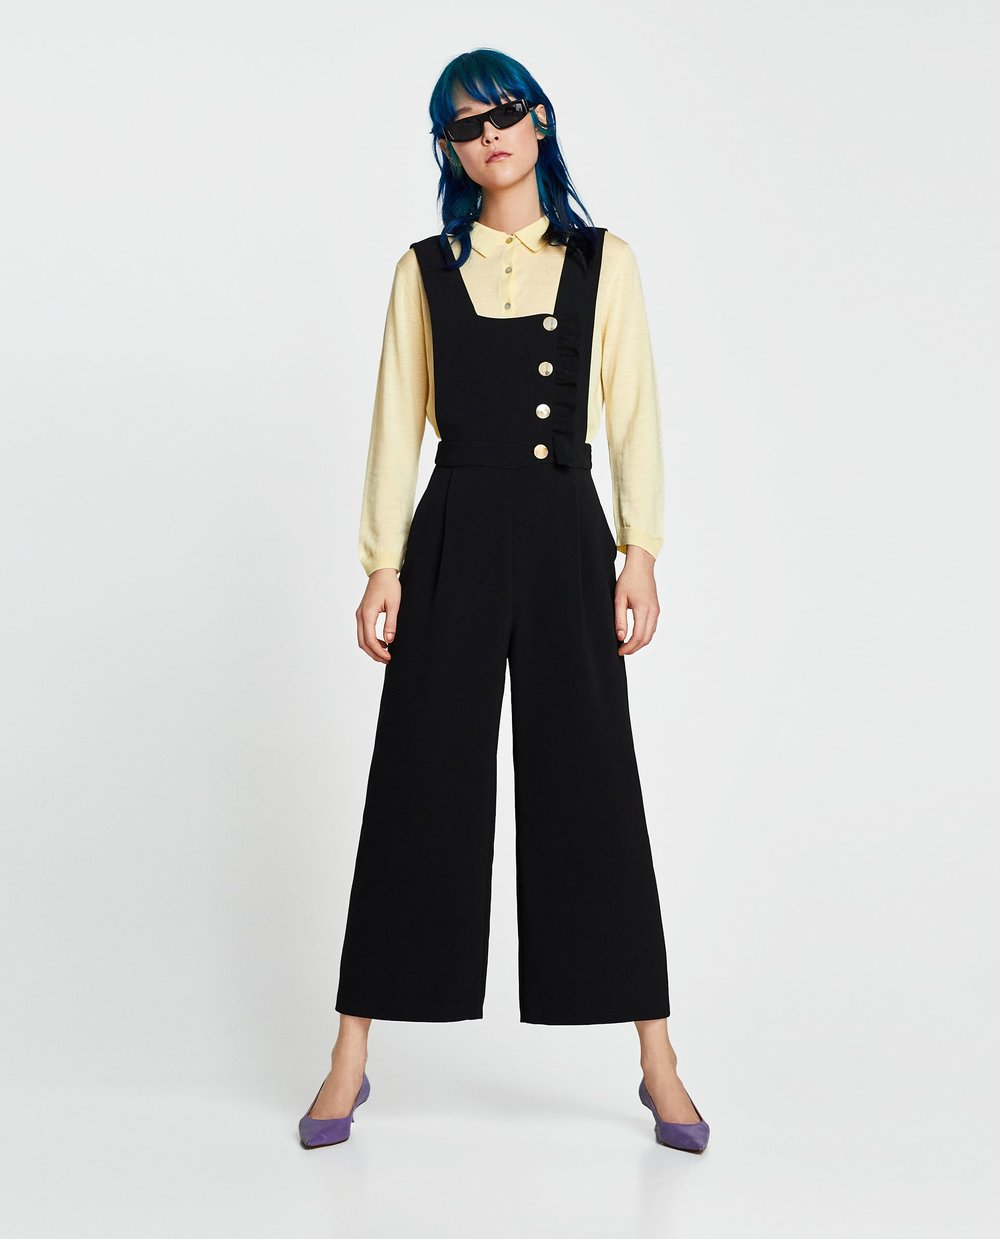 Zara Dungarees with Buttons and Ruffle Trim